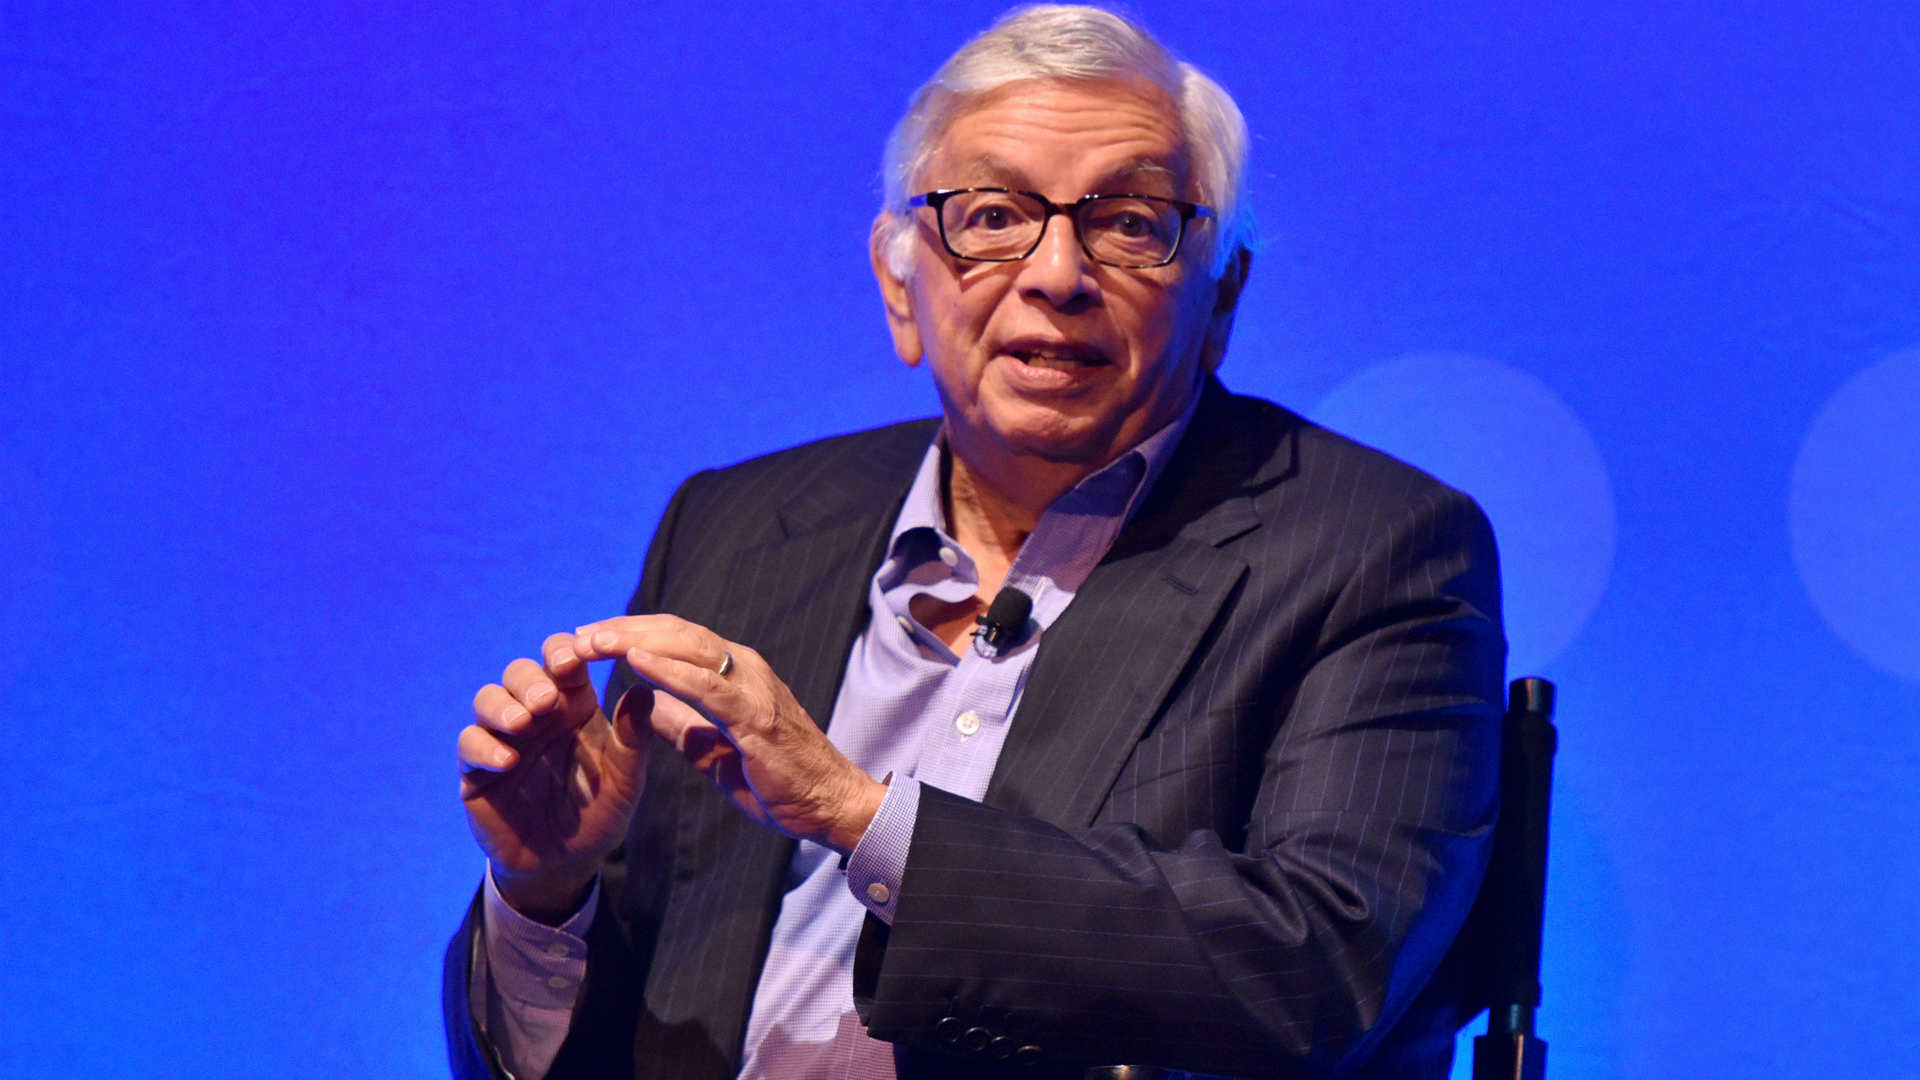 David Stern in favor of removing marijuana from NBA's banned substance list